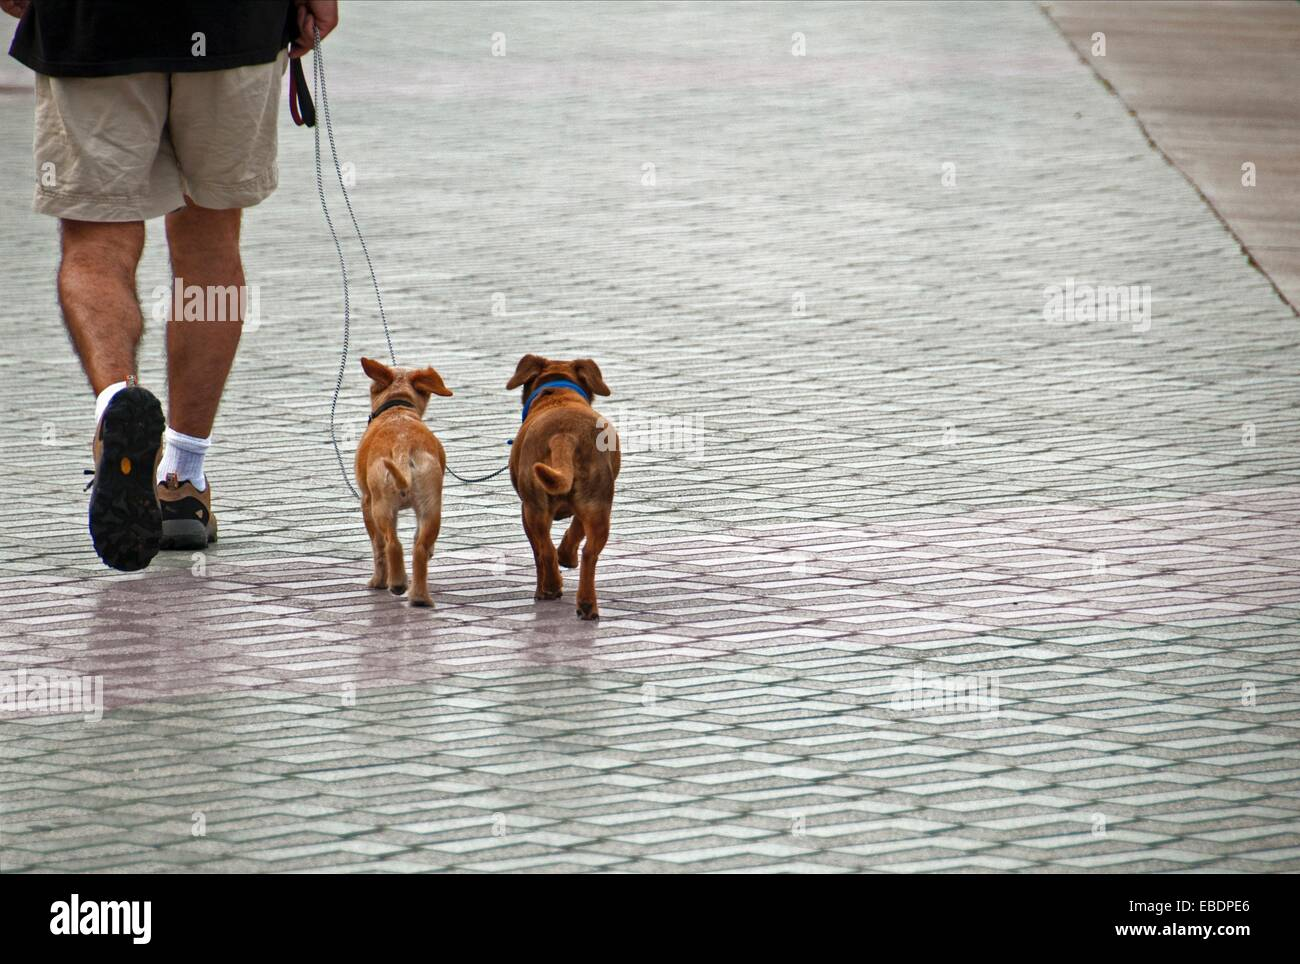 man walking out two small dogs on a leash - Stock Image